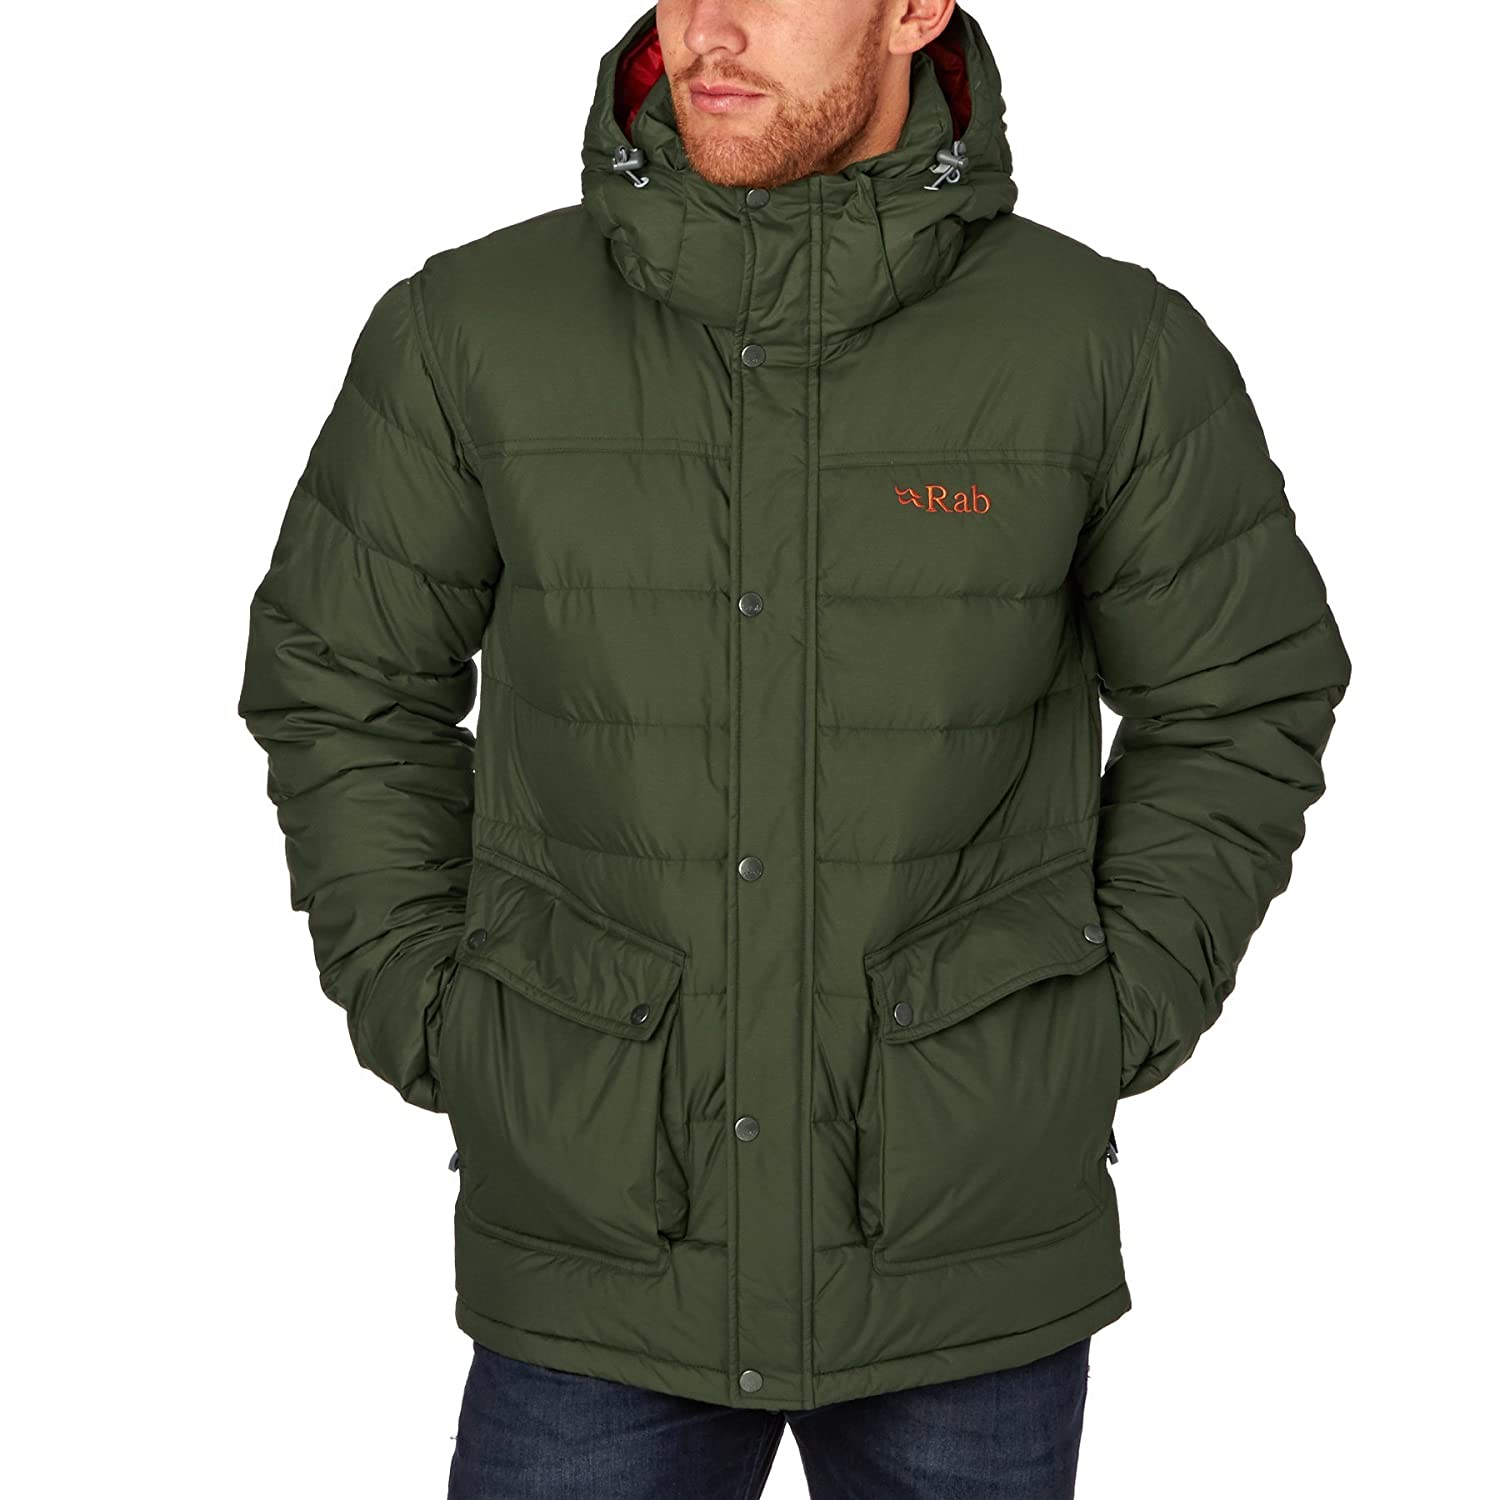 Rab Sanctuary Jacket Men blue 2015 winter jacket